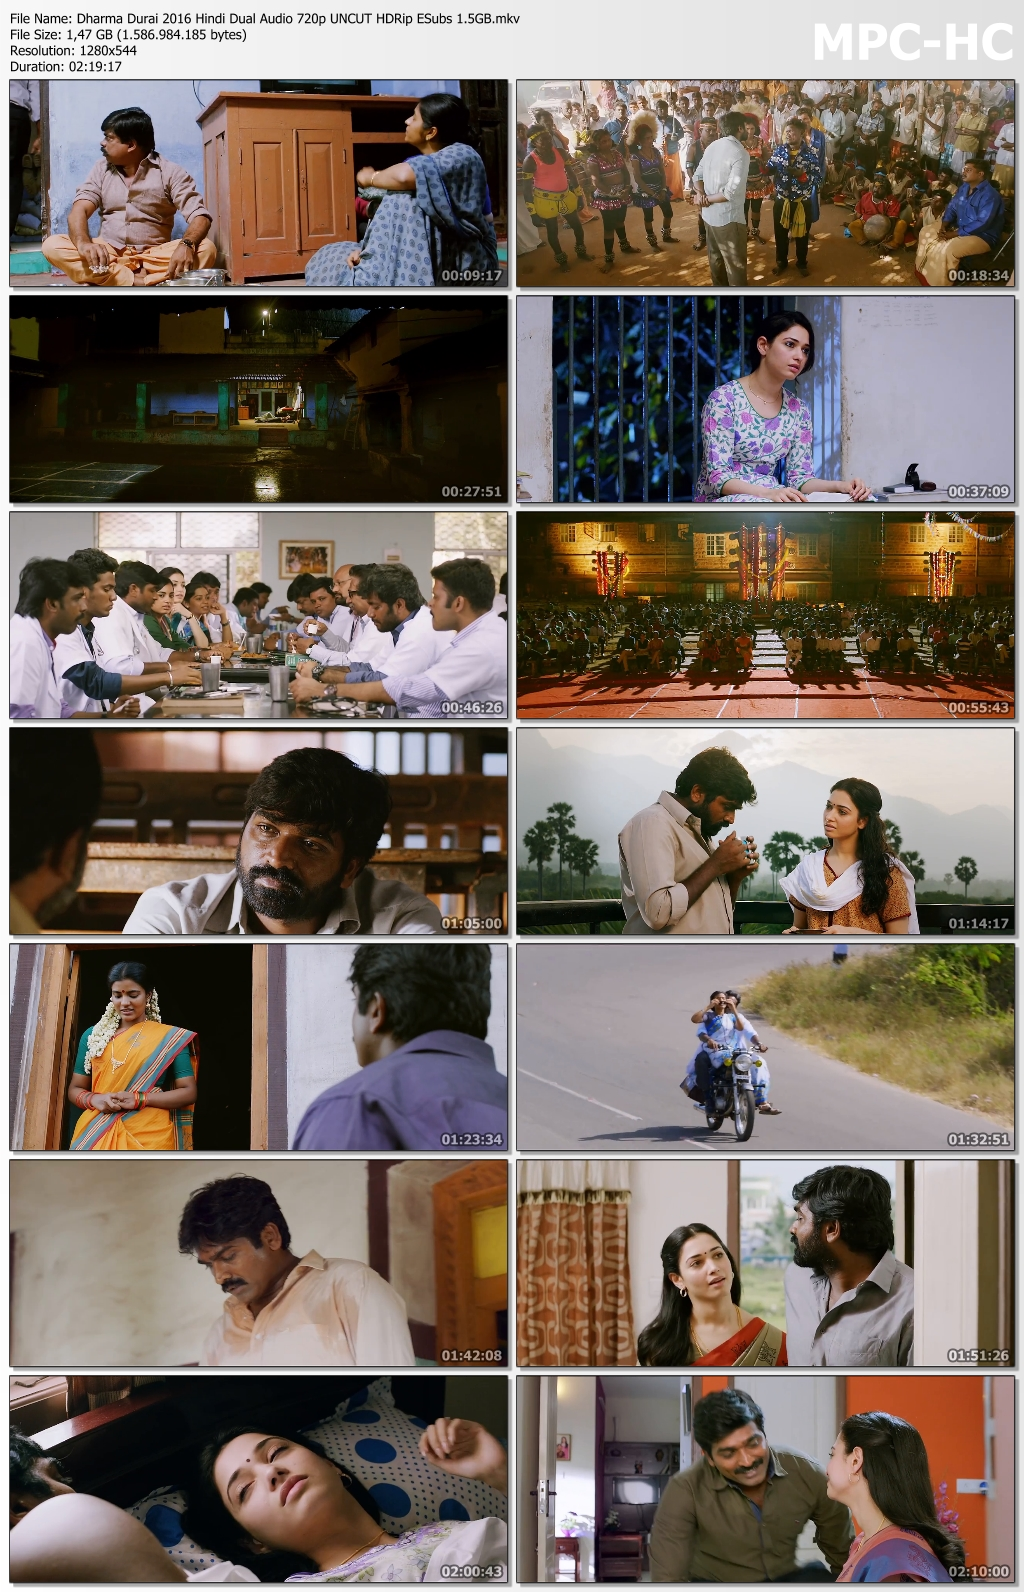 Dharma-Durai-2016-Hindi-Dual-Audio-720p-UNCUT-HDRip-ESubs-1-5-GB-mkv-thumbs